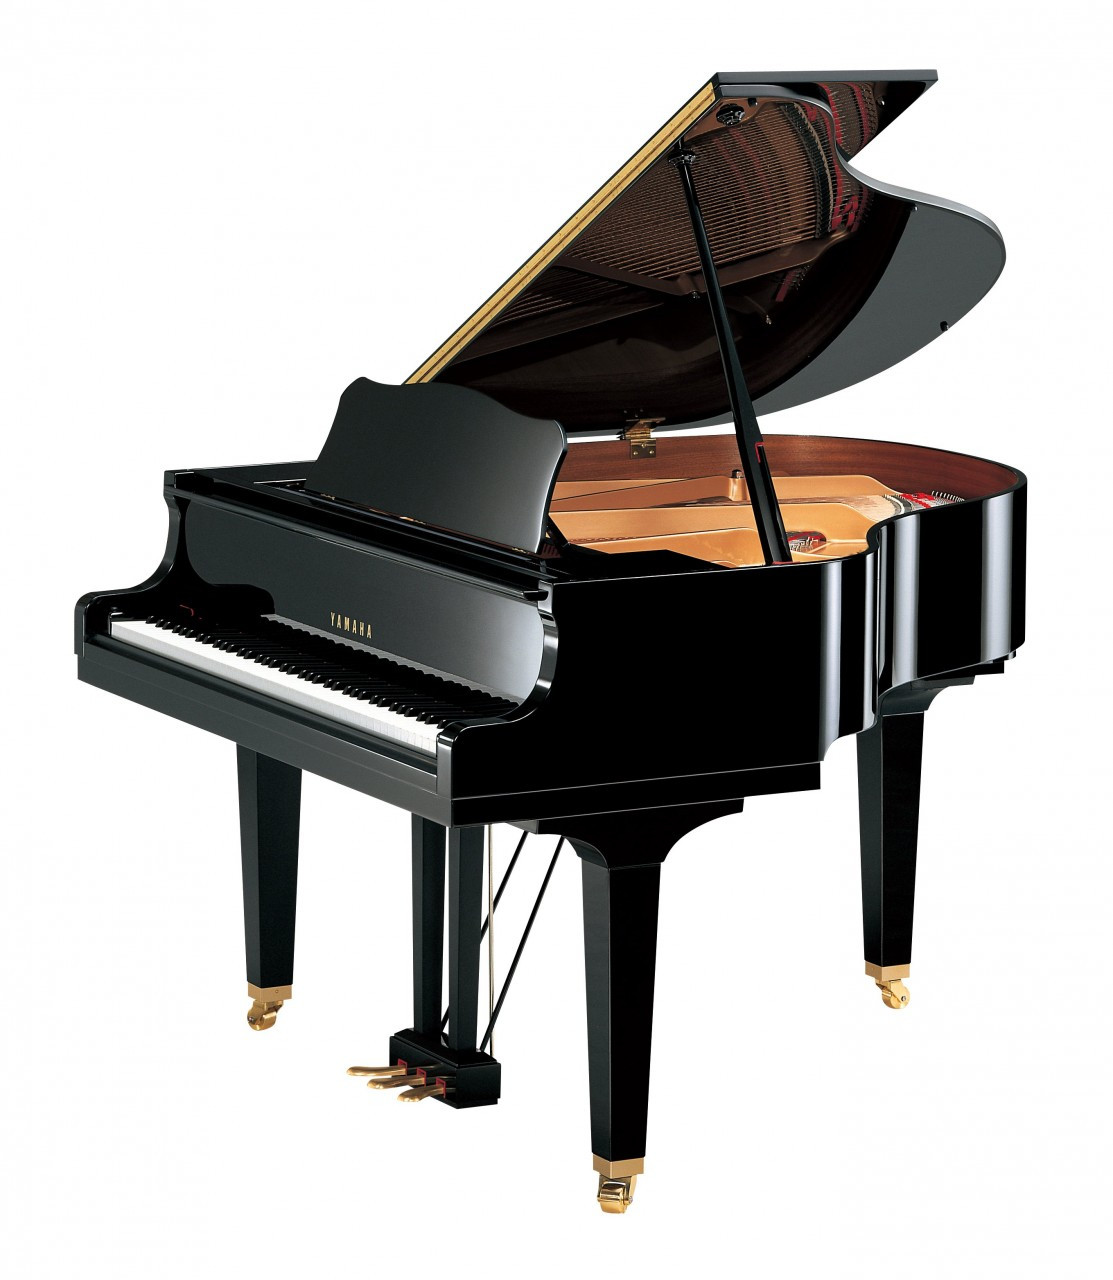 yamaha gb1k yamaha grand pianos yamaha baby grand pianos